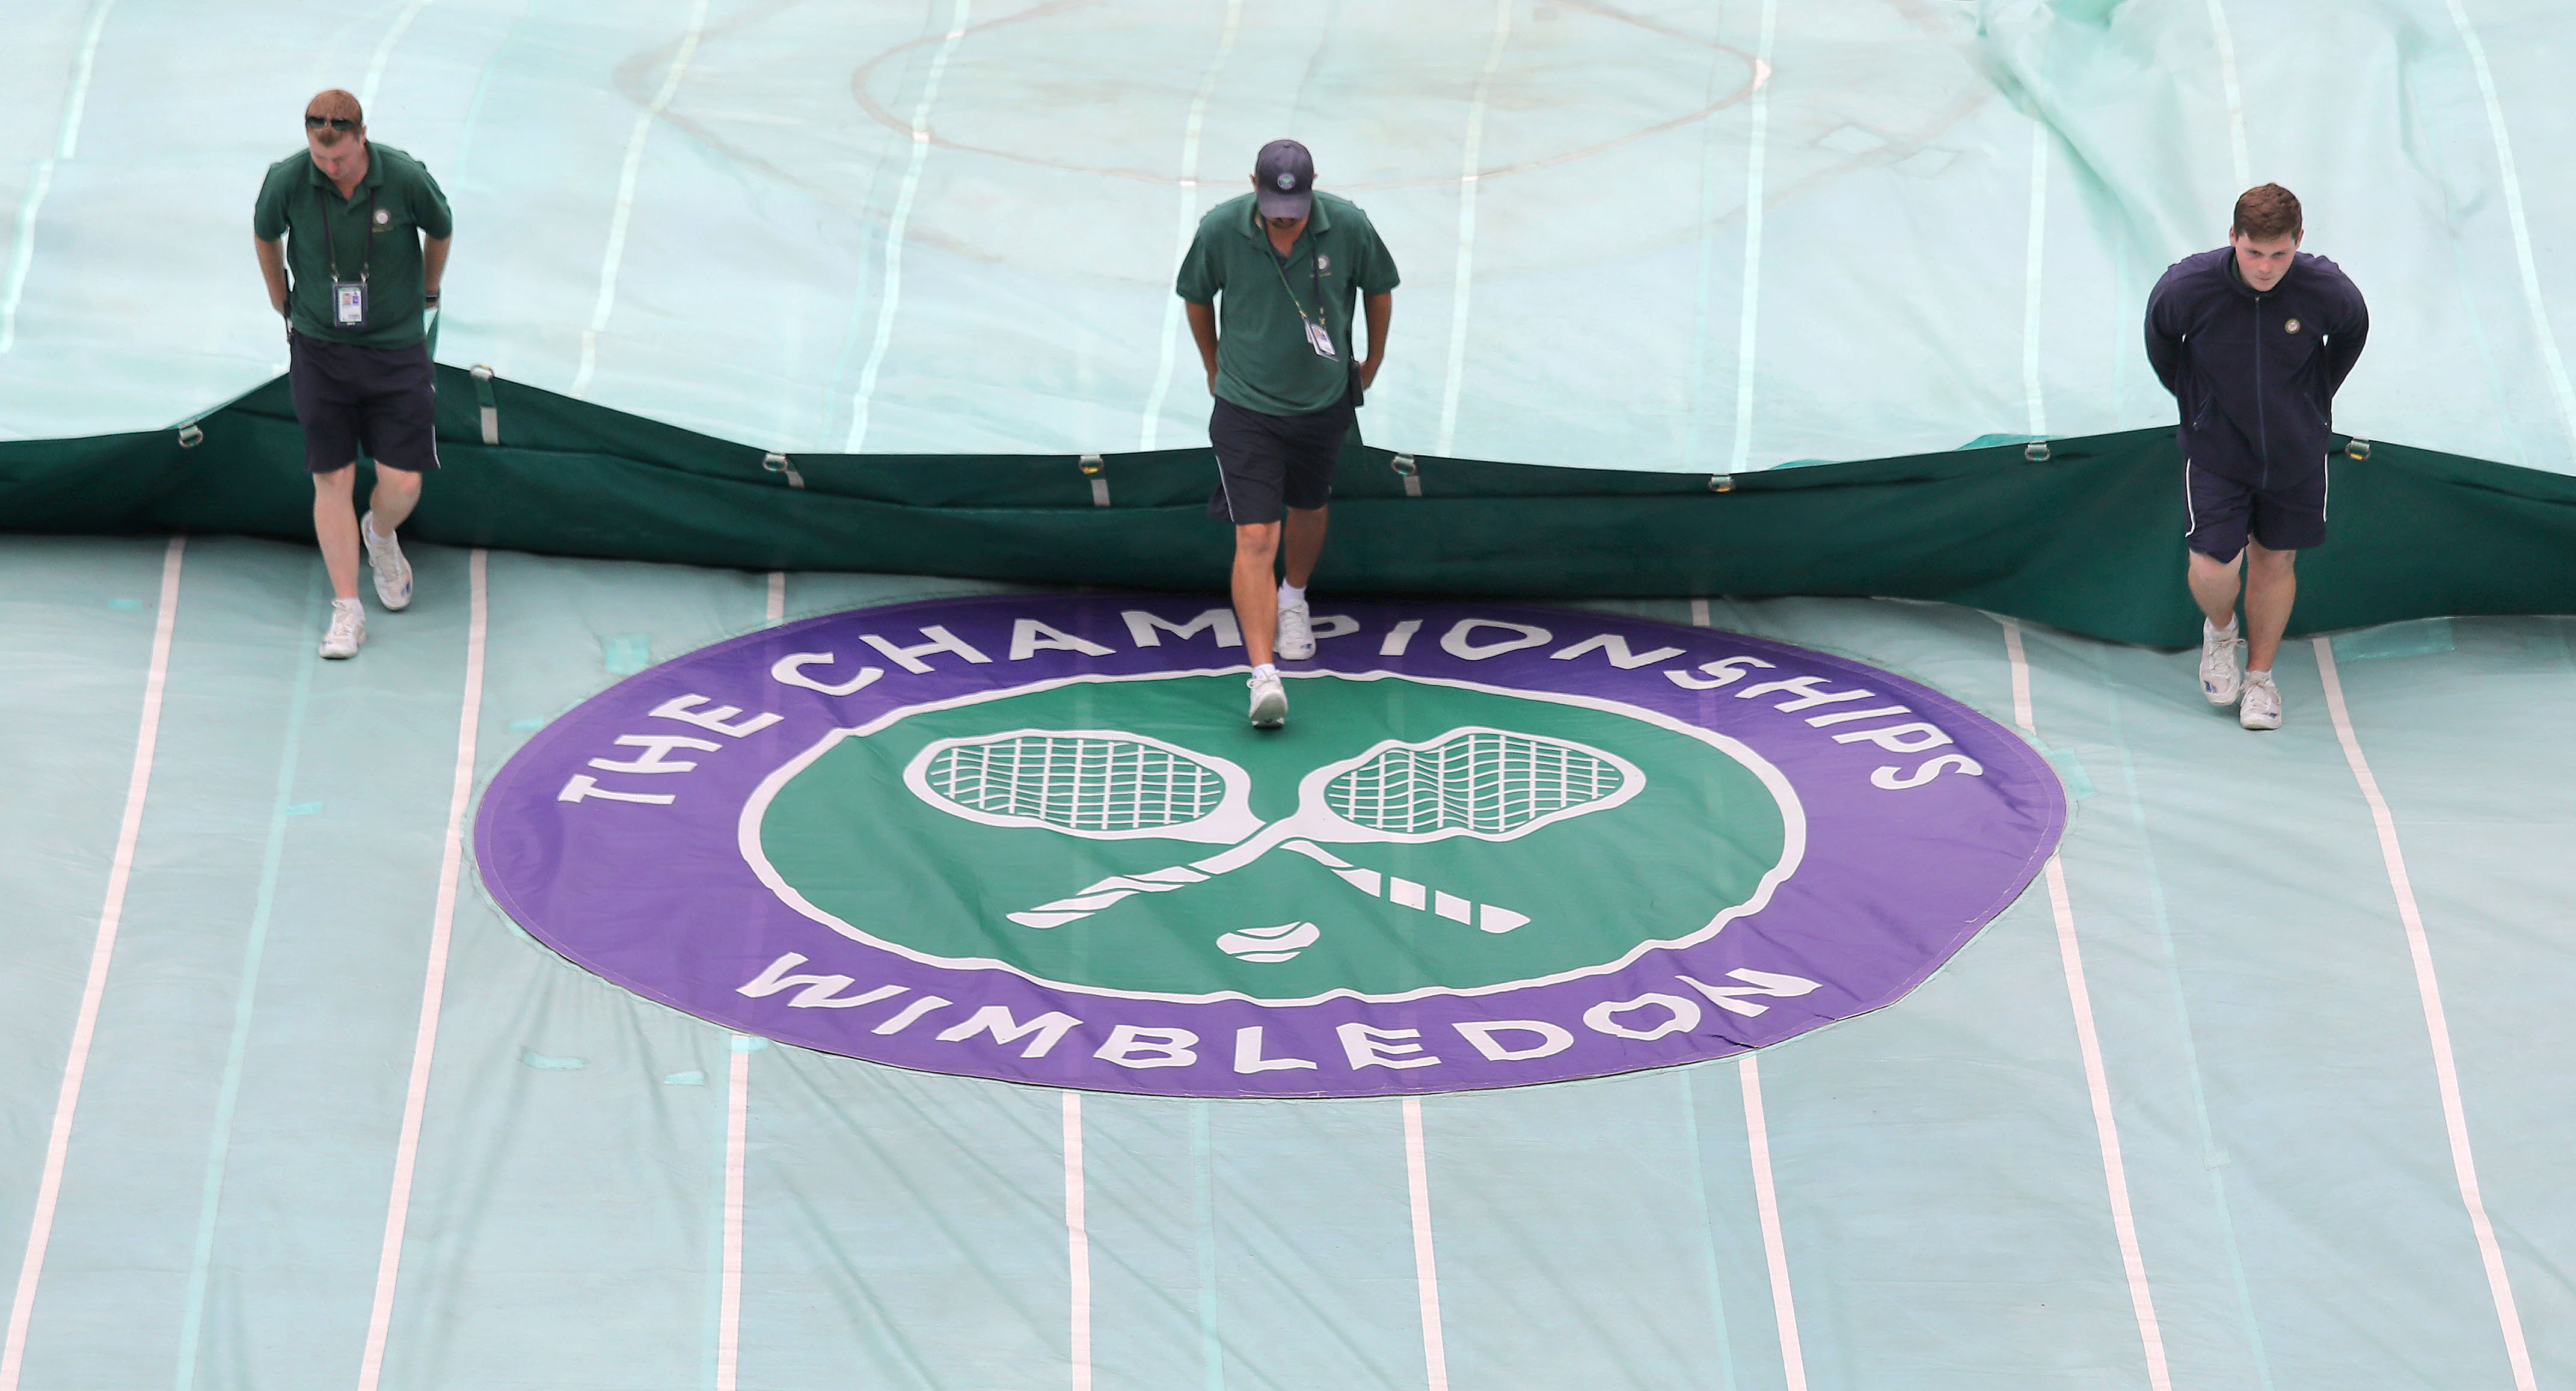 The covers are taken off on center court ahead of day eight of the Wimbledon Championships at the All England Lawn Tennis and Croquet Club, Wimbledon.